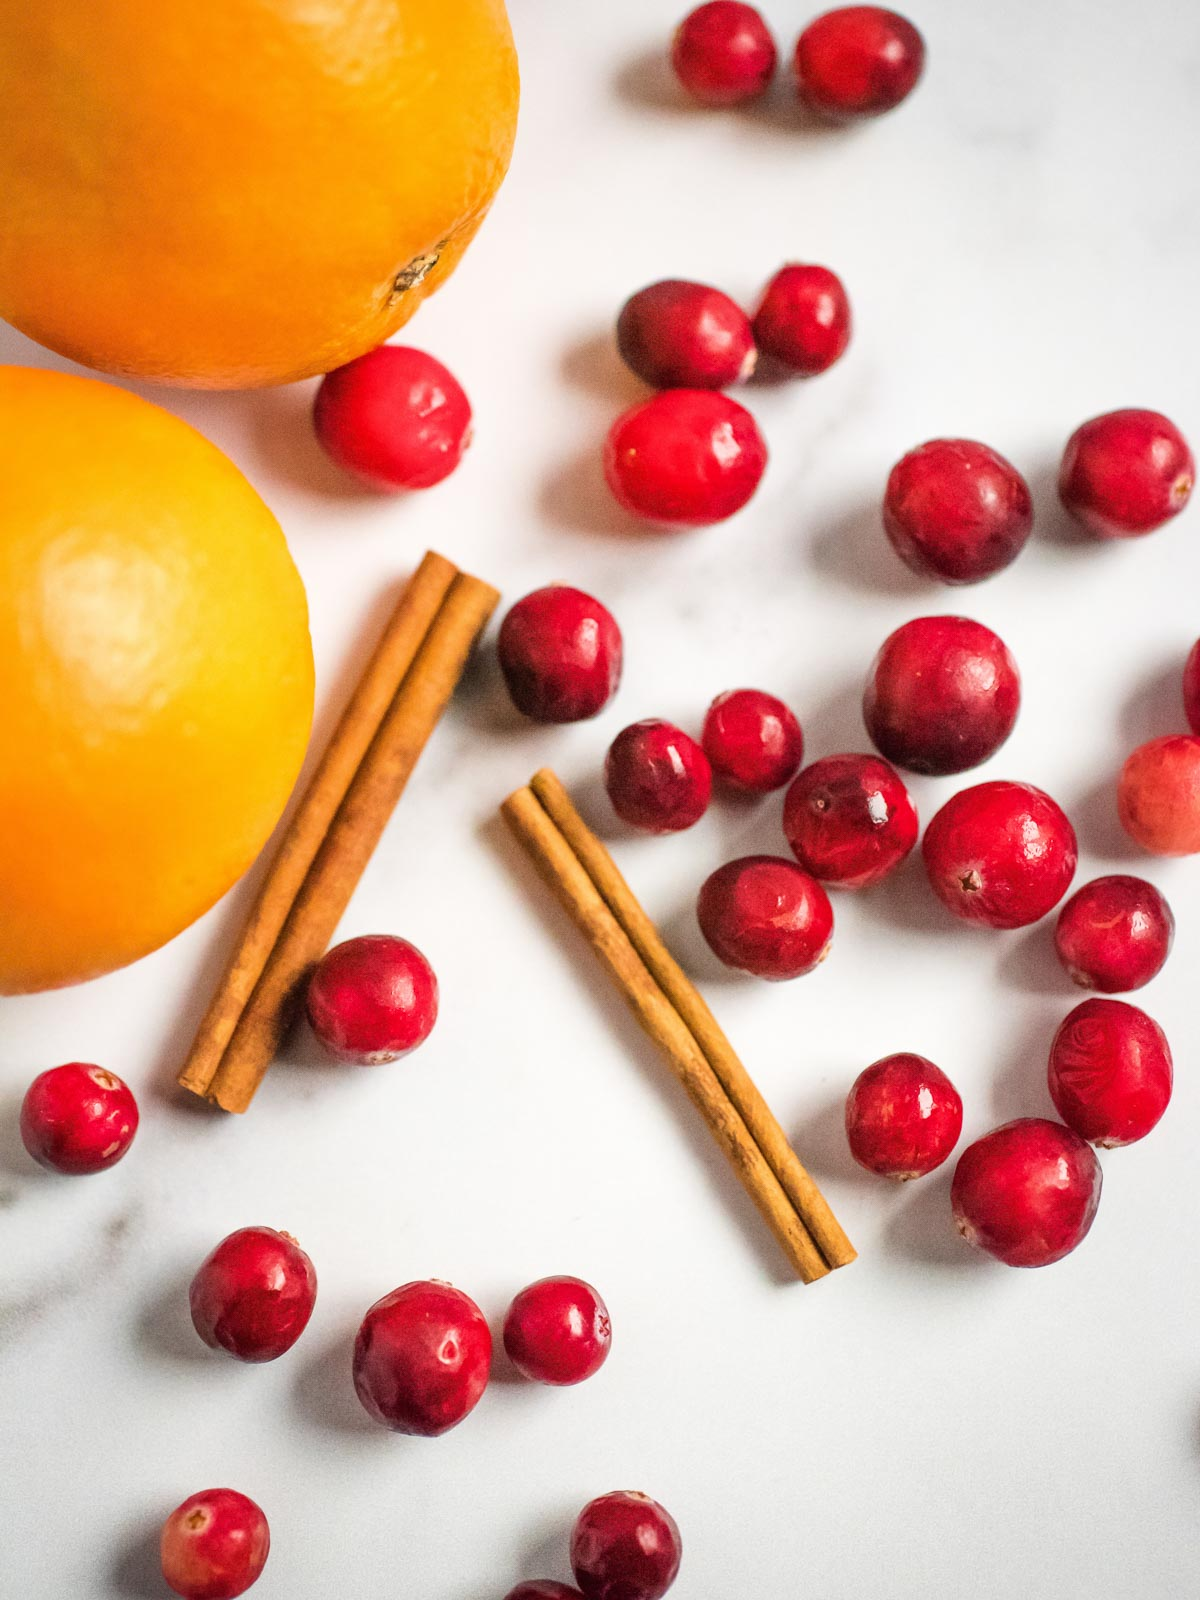 oranges cinnamon sticks and cranberries on the surface